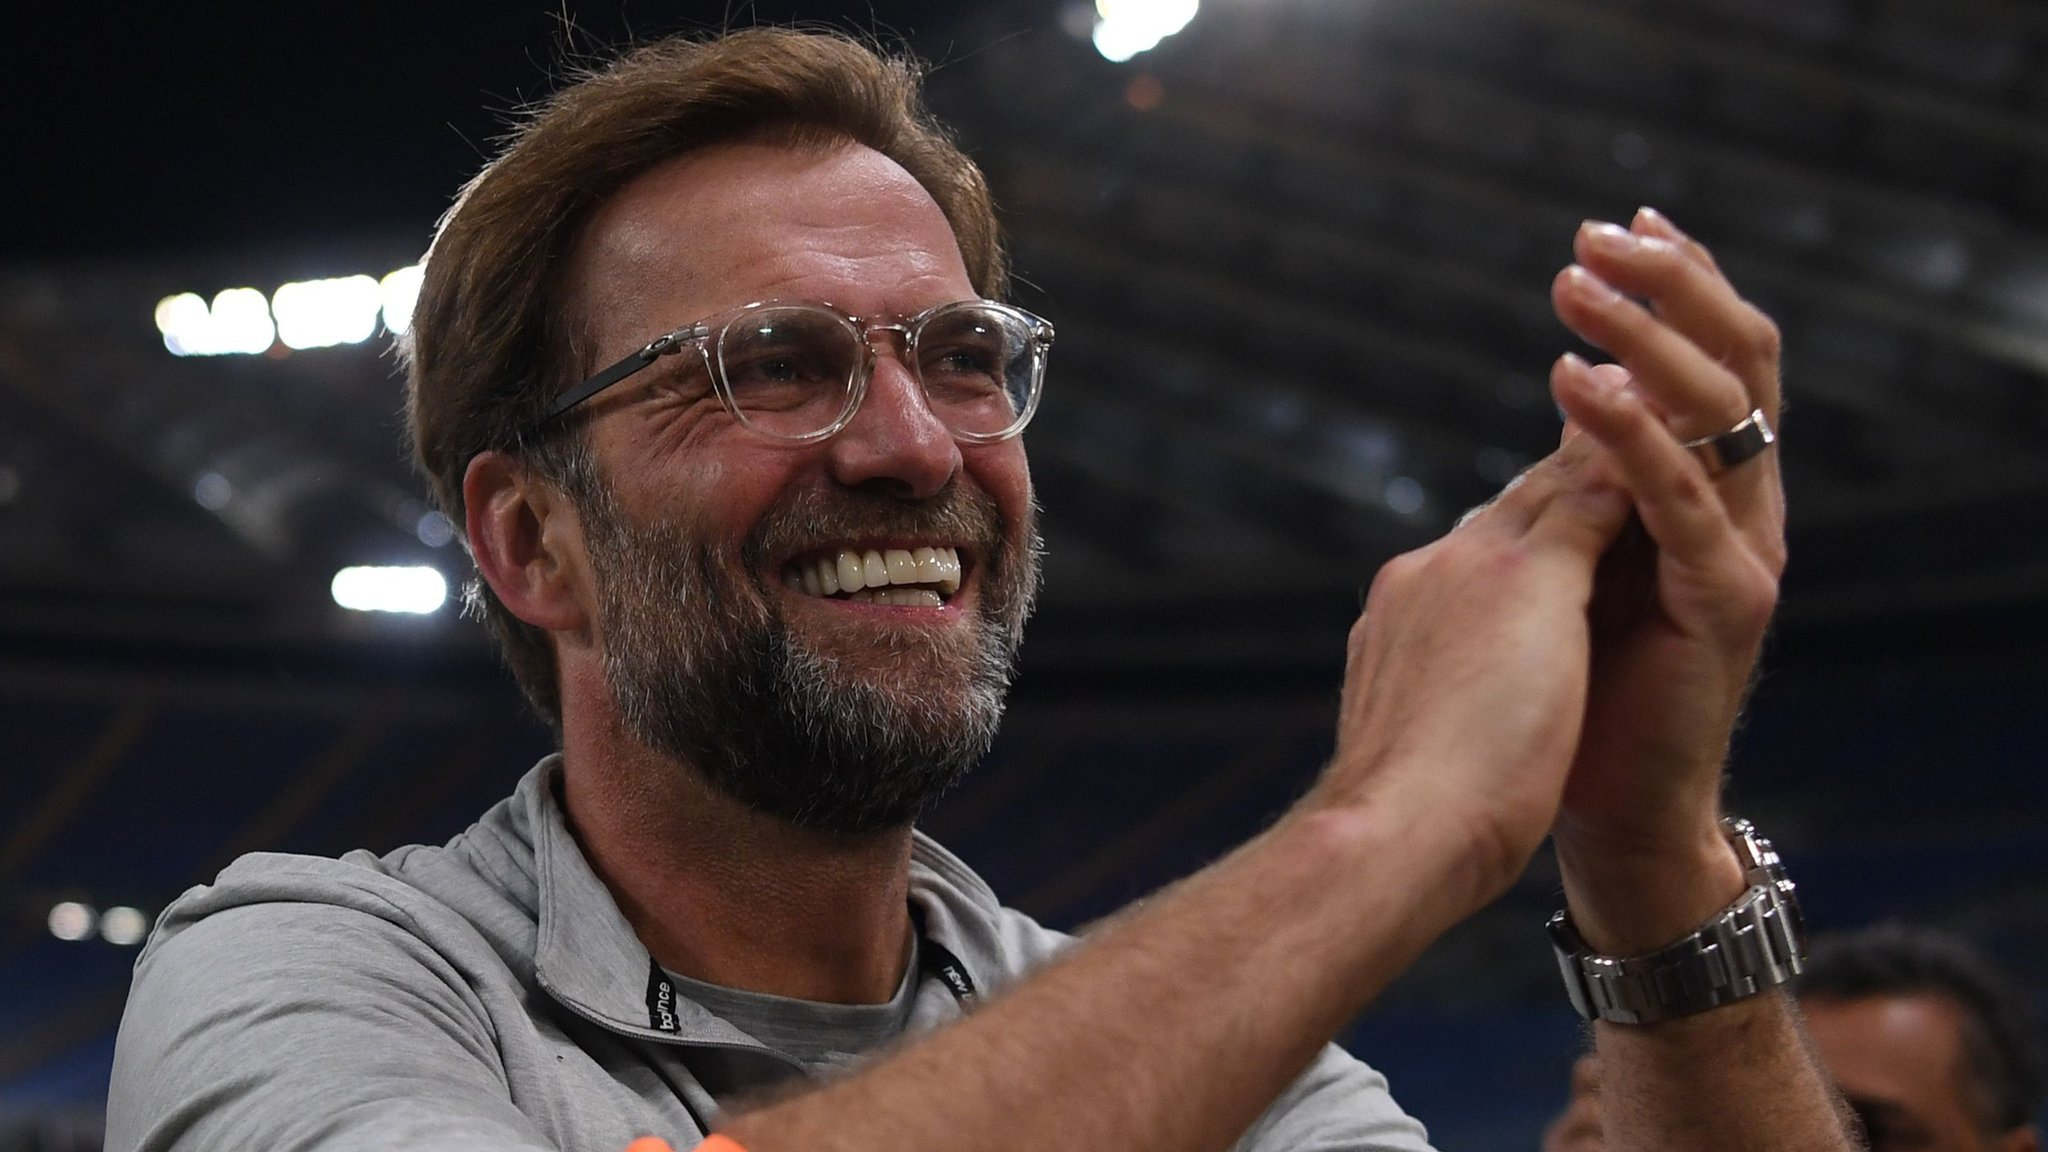 'We are here because we are Liverpool' - Klopp on Champions League final